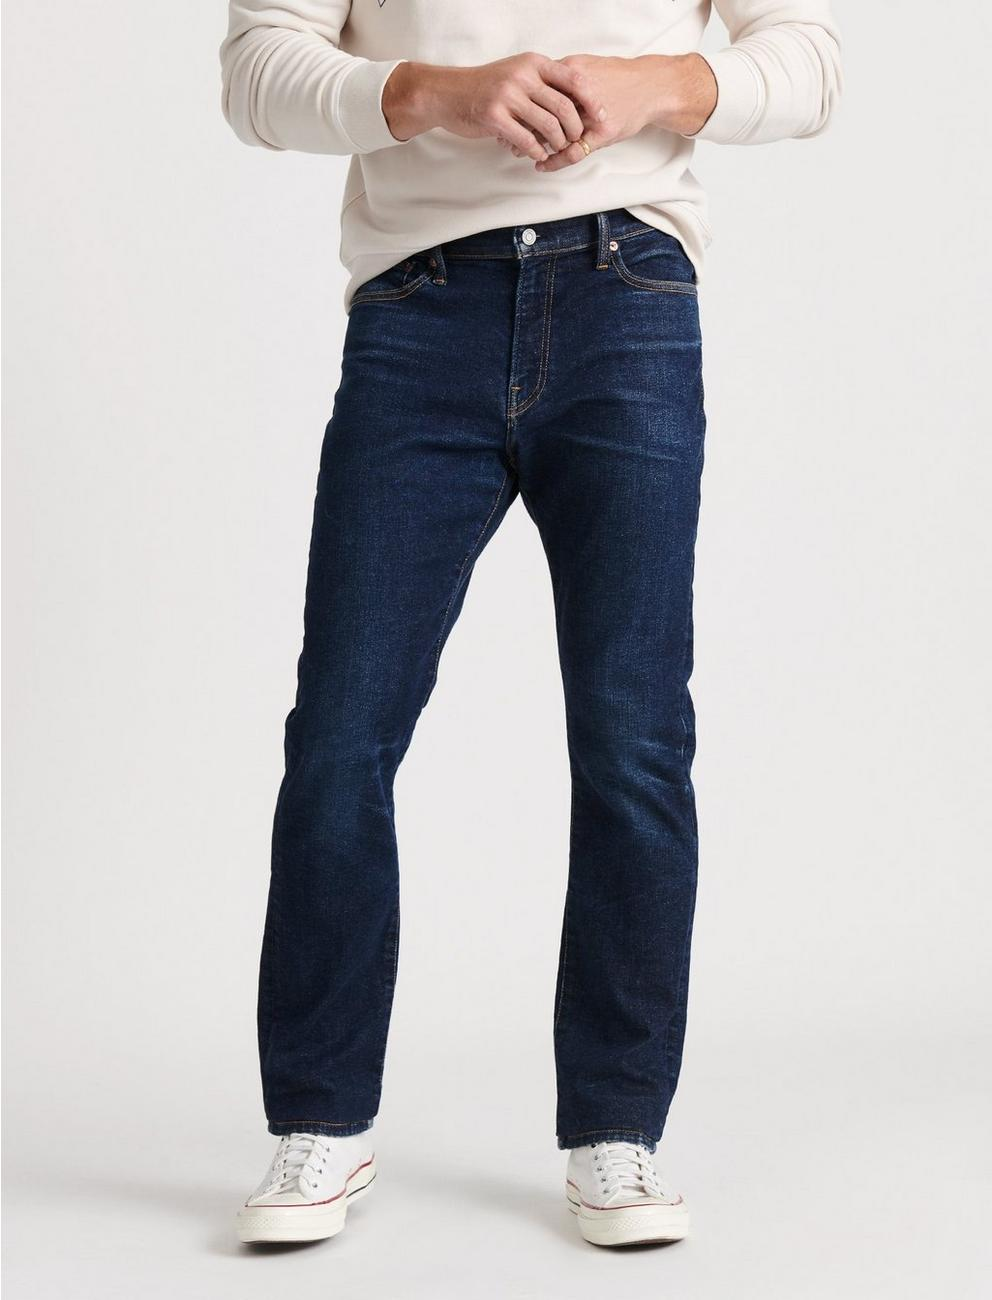 410 ATHLETIC SLIM ADVANCED STRETCH JEAN, WRIGHT